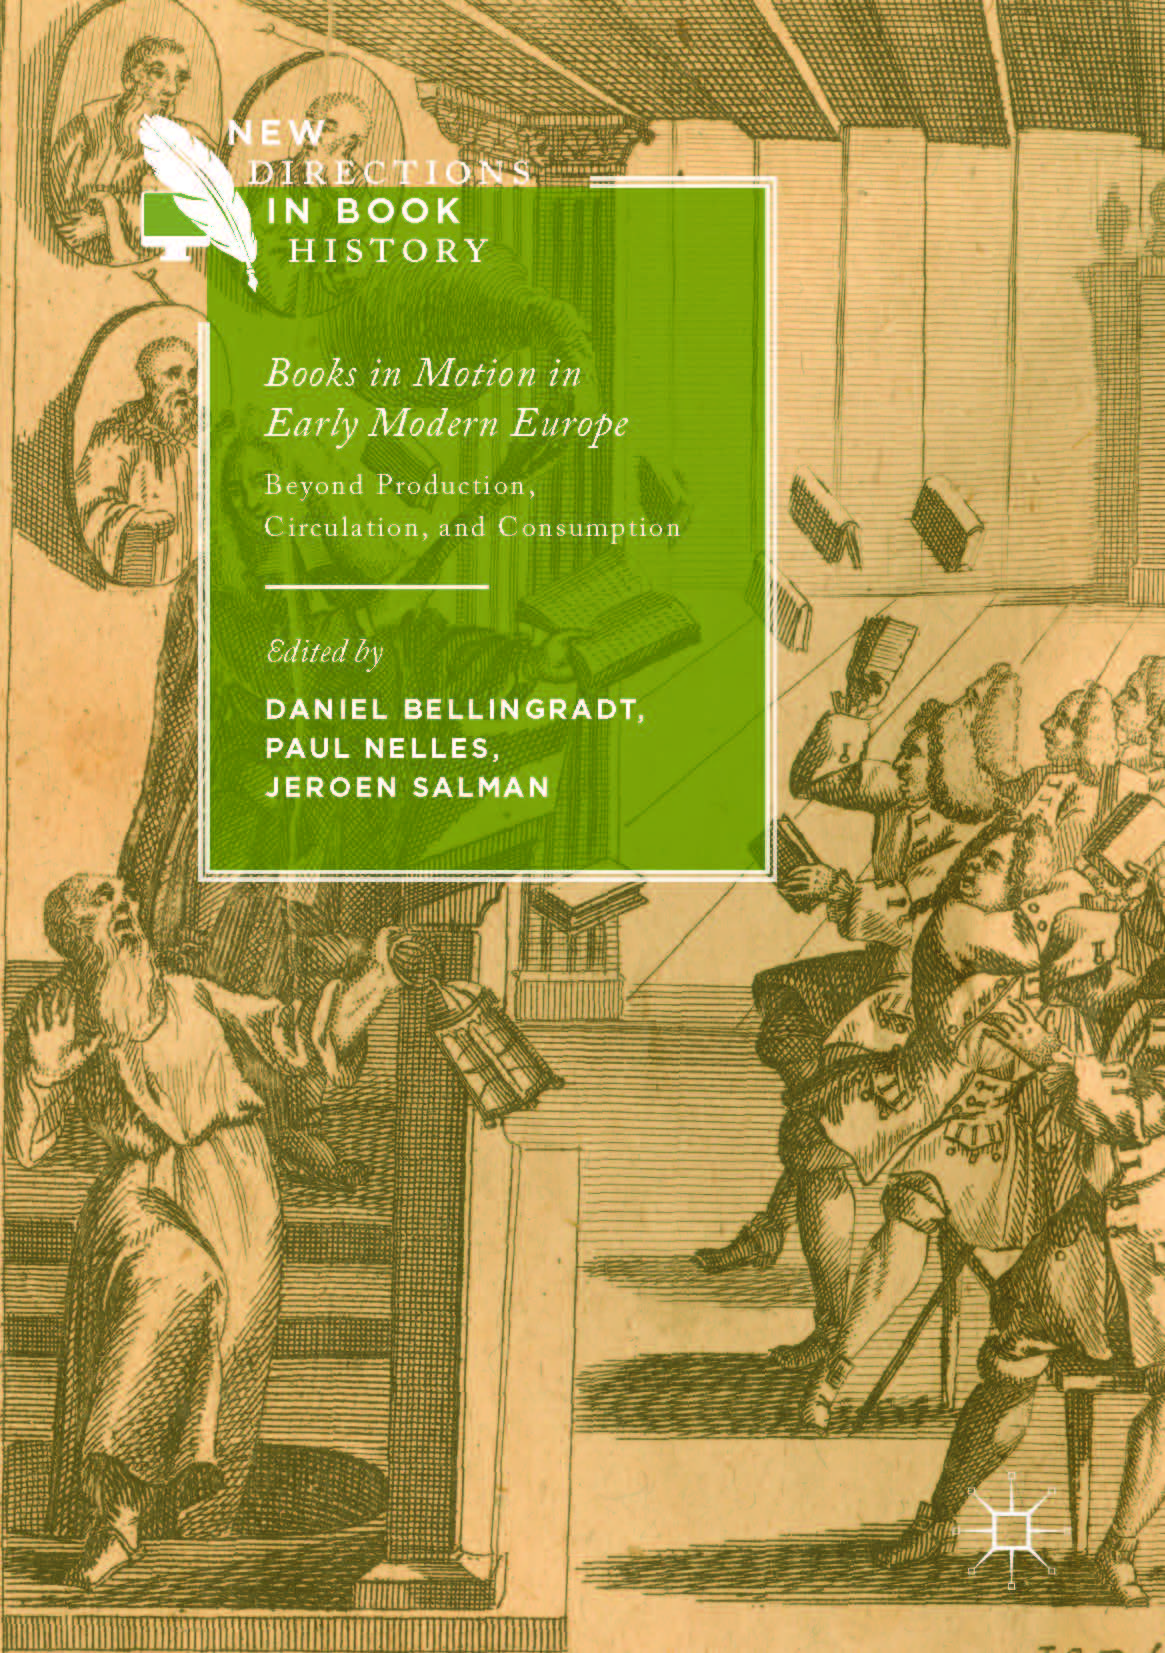 paul nelles has published books in motion in early modern